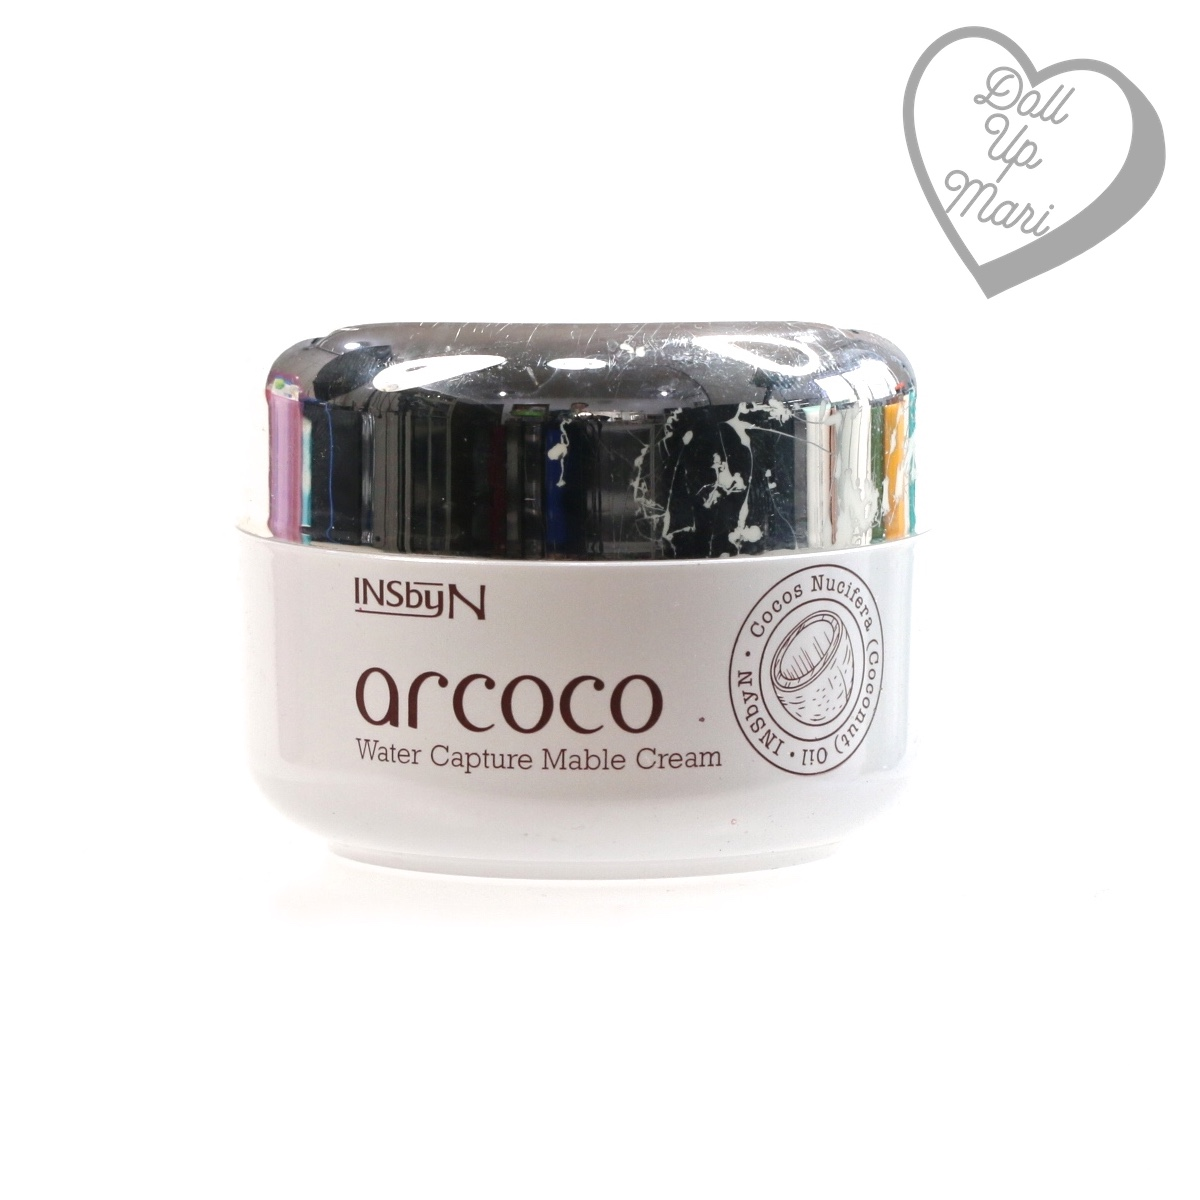 InsByN Arcoco Water Capture Marble Cream